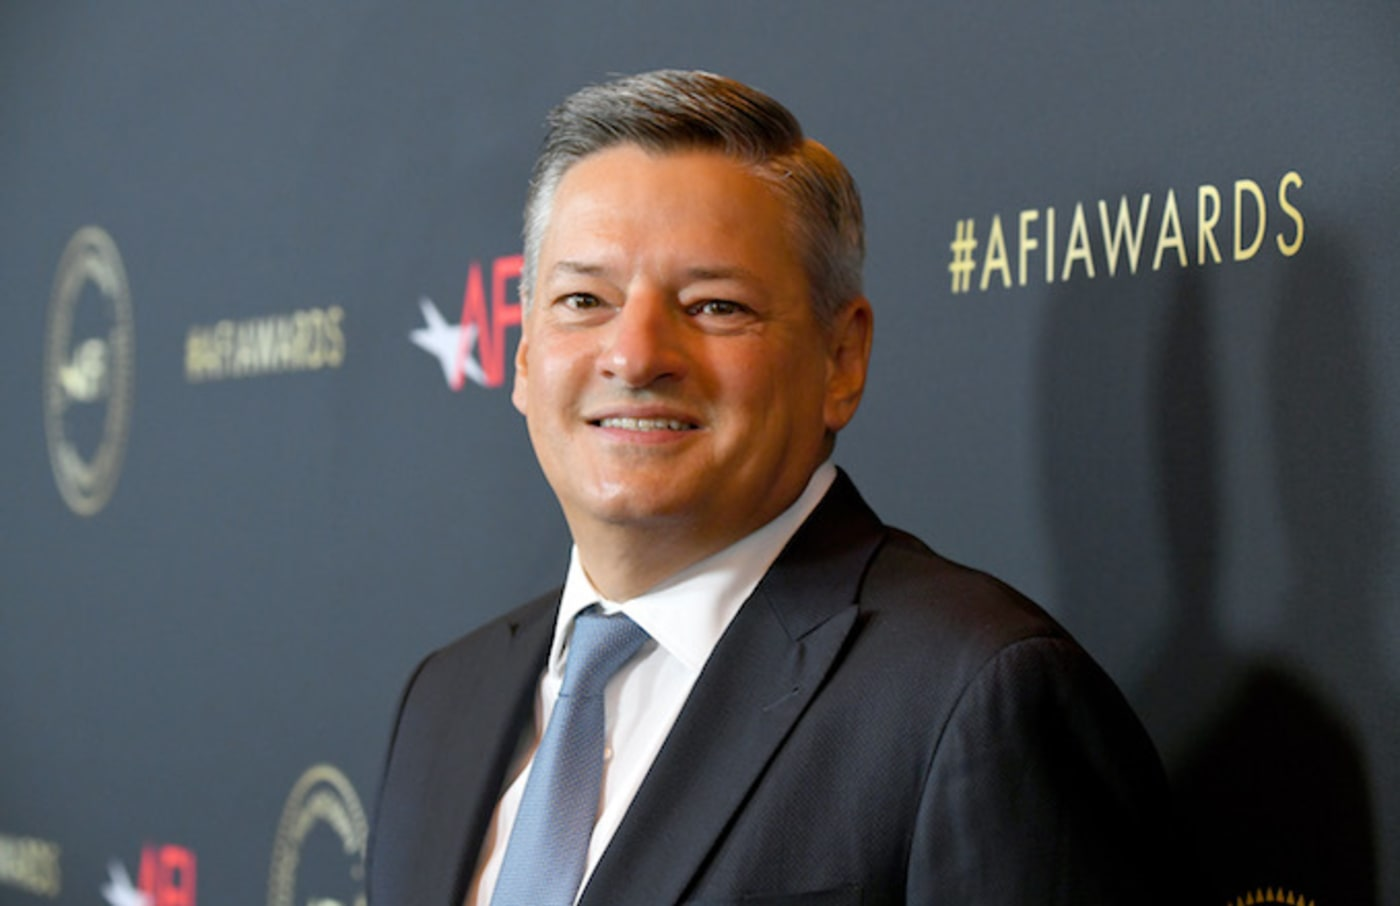 AFI Board of Trustees Ted Sarandos attends the 19th Annual AFI Awards.